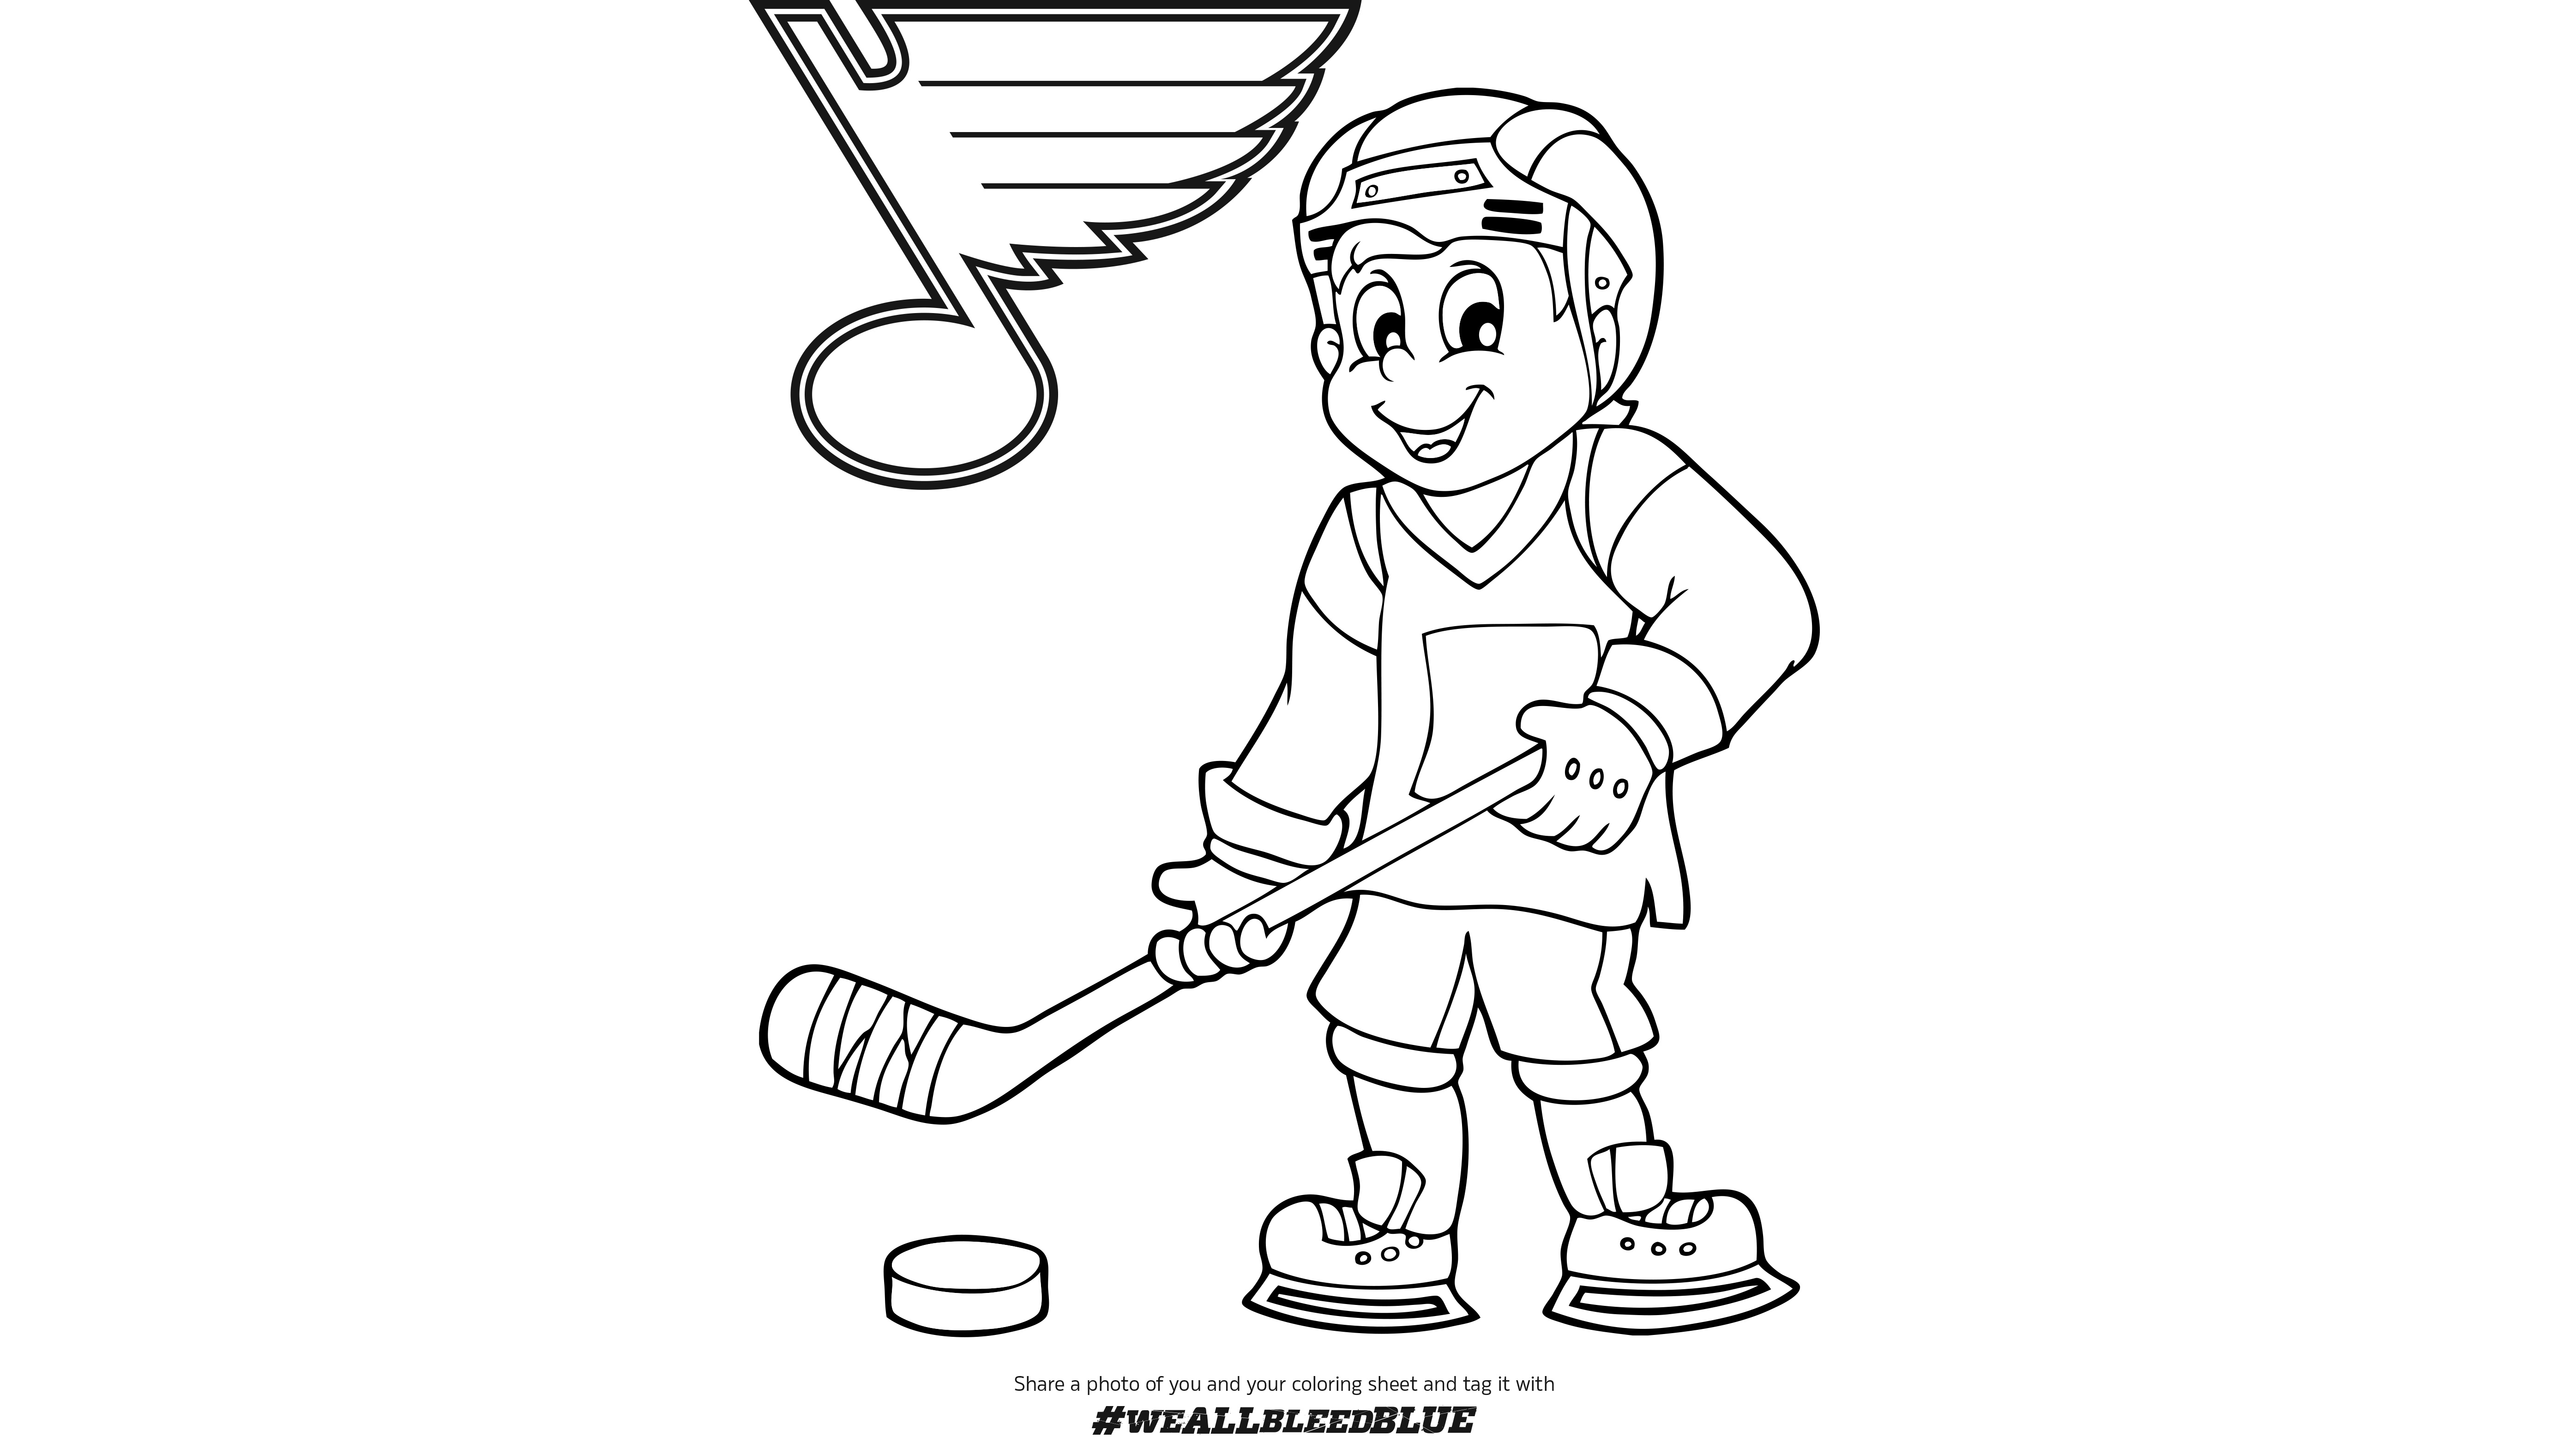 st louis blues coloring pages st louis blues coloring pages at getdrawings free download louis st blues coloring pages